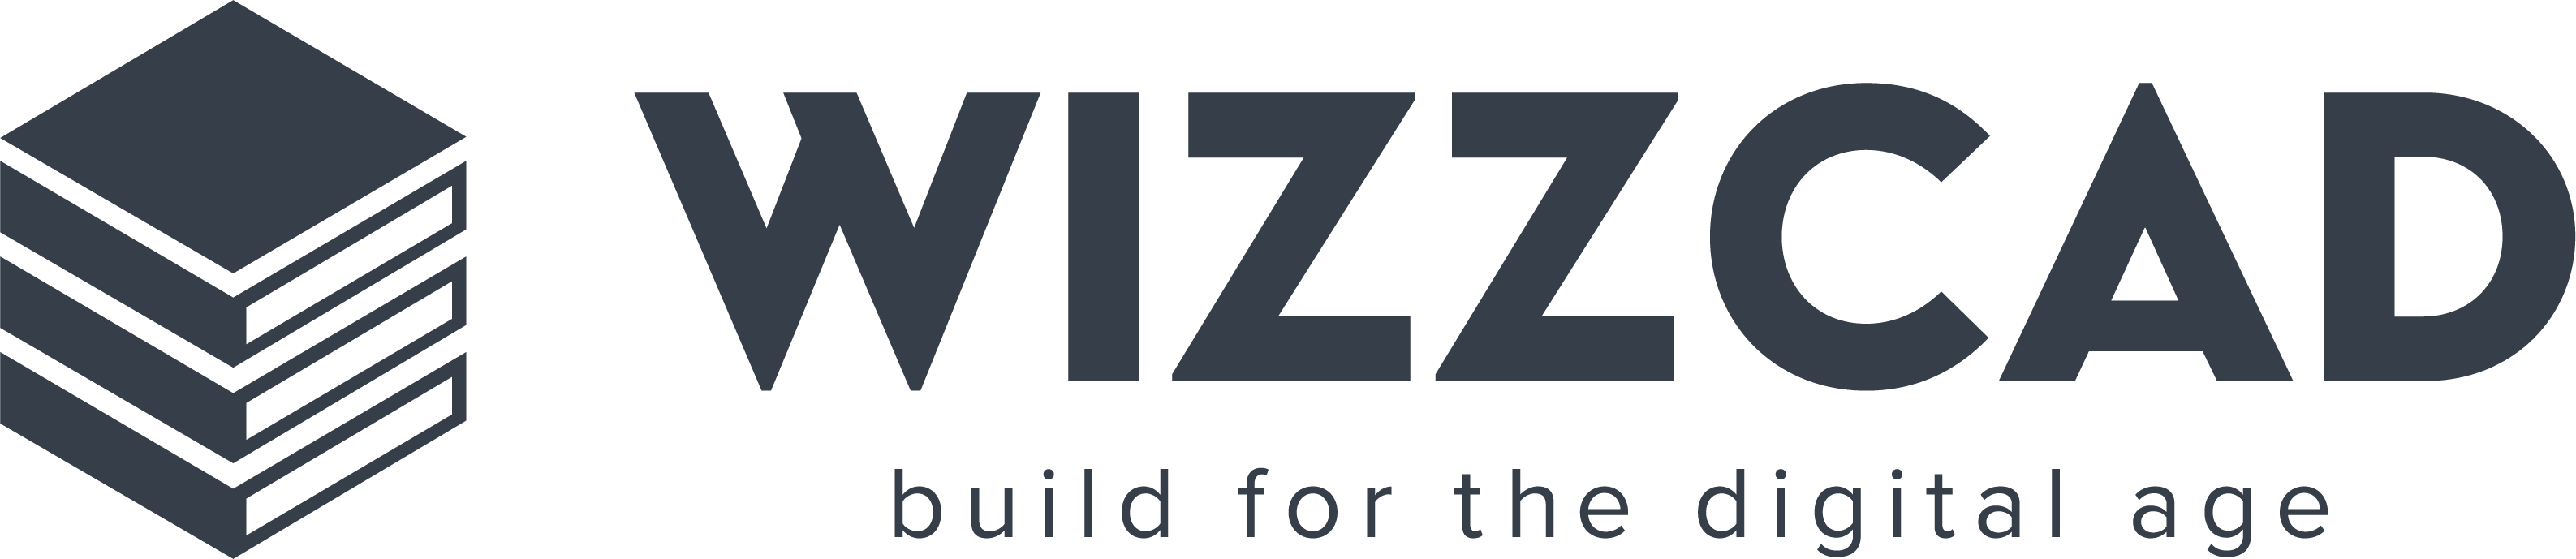 WIZZCAD BLOG